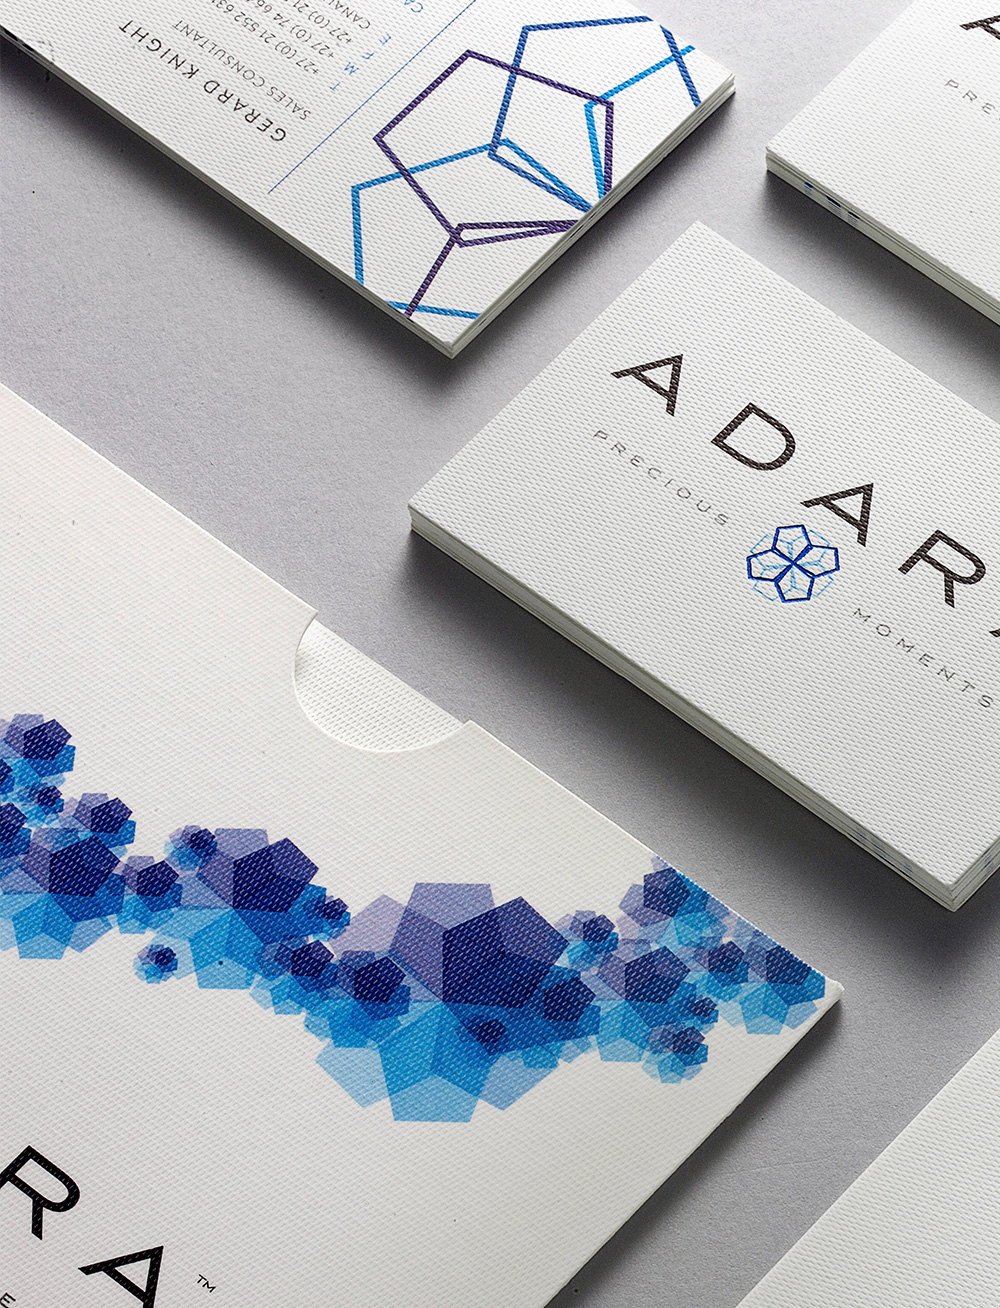 ADARA - An exclusive South African jewellery company